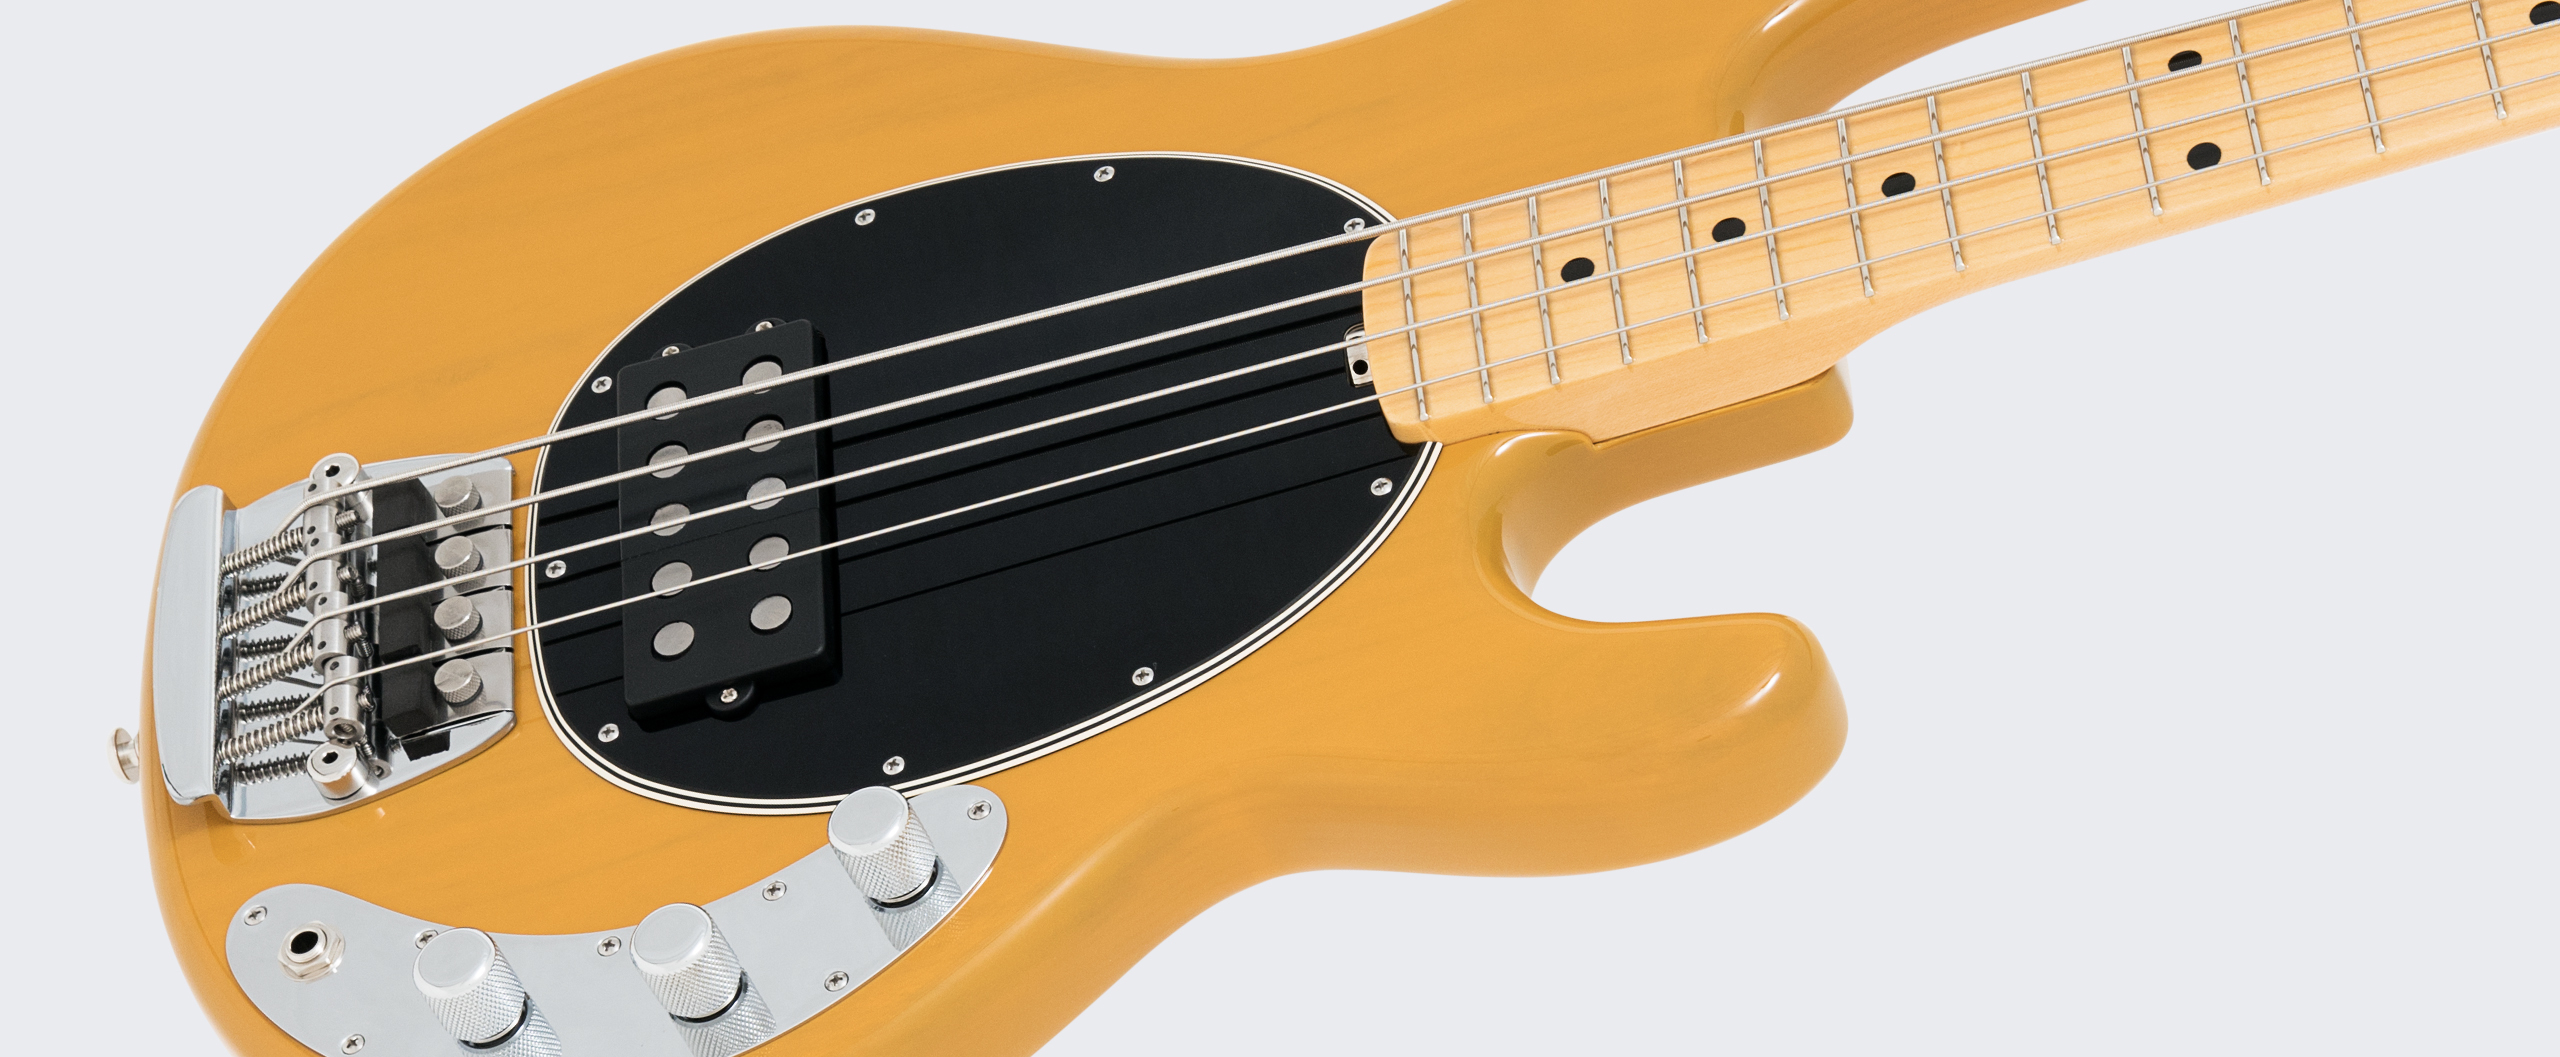 Ernie Ball Music Man 40th Anniversary StingRay Bass Slide-59